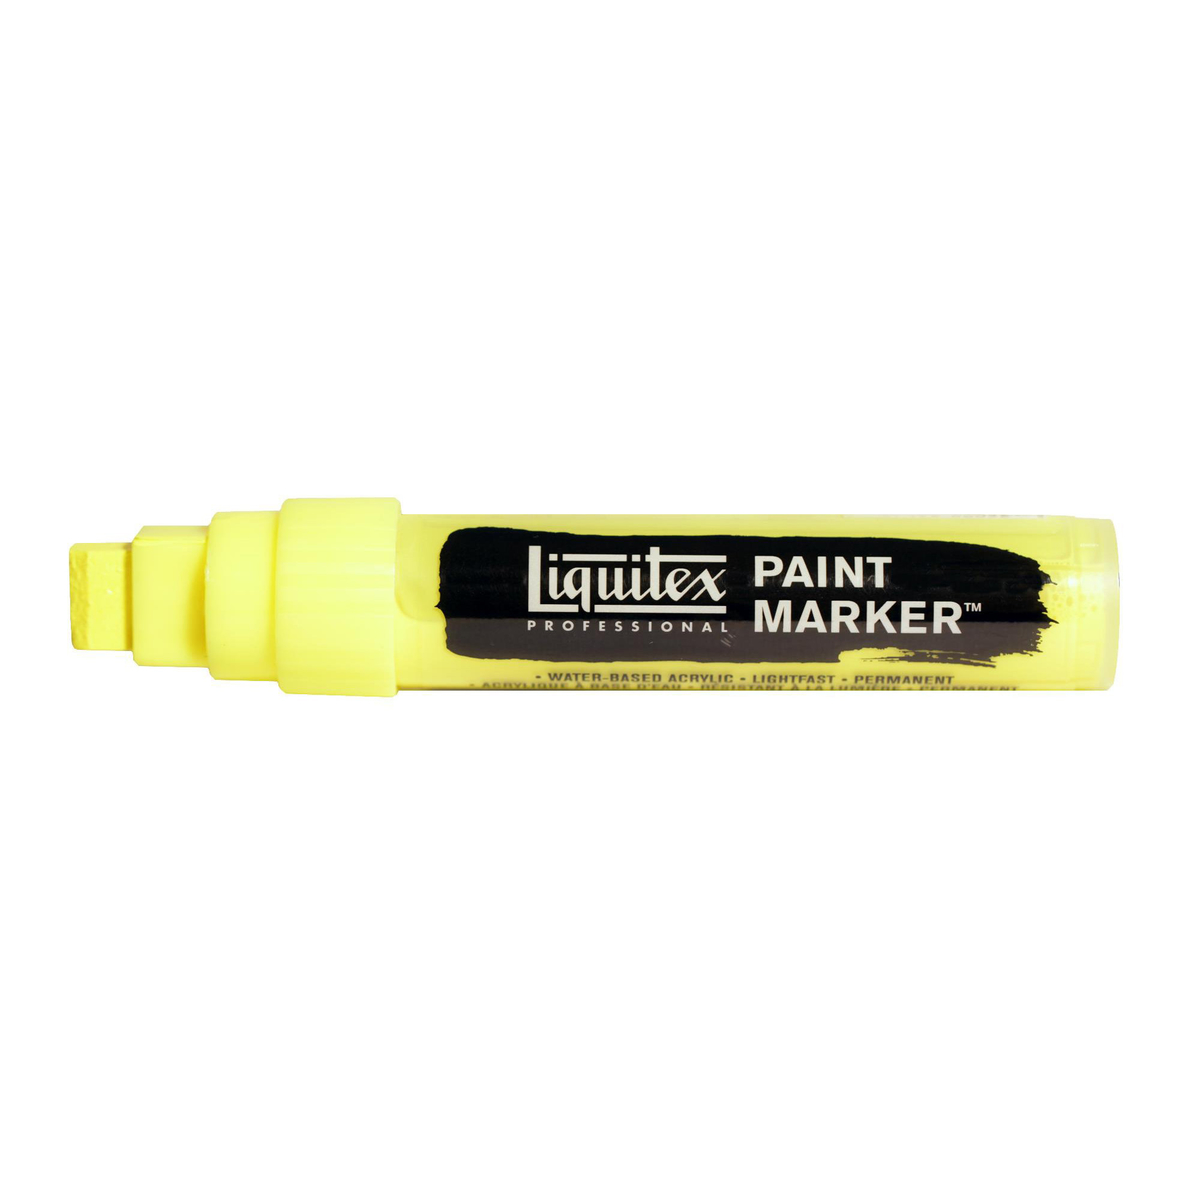 LX P. Marker WP Fluo. Yellow